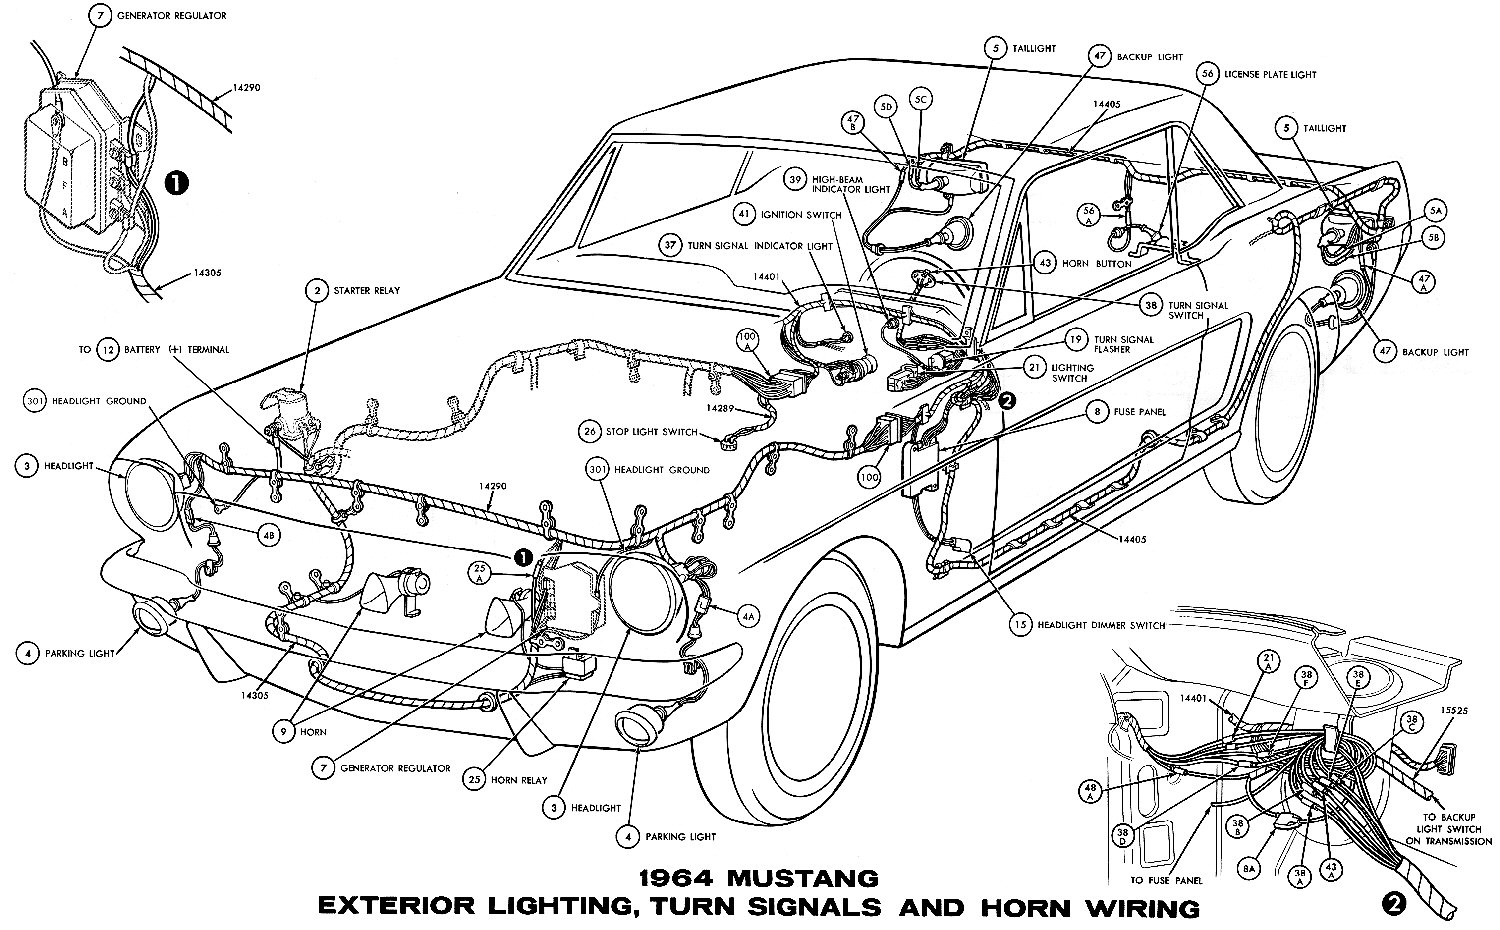 [DIAGRAM] 1968 Mustang Heater Motor Wiring Diagram FULL